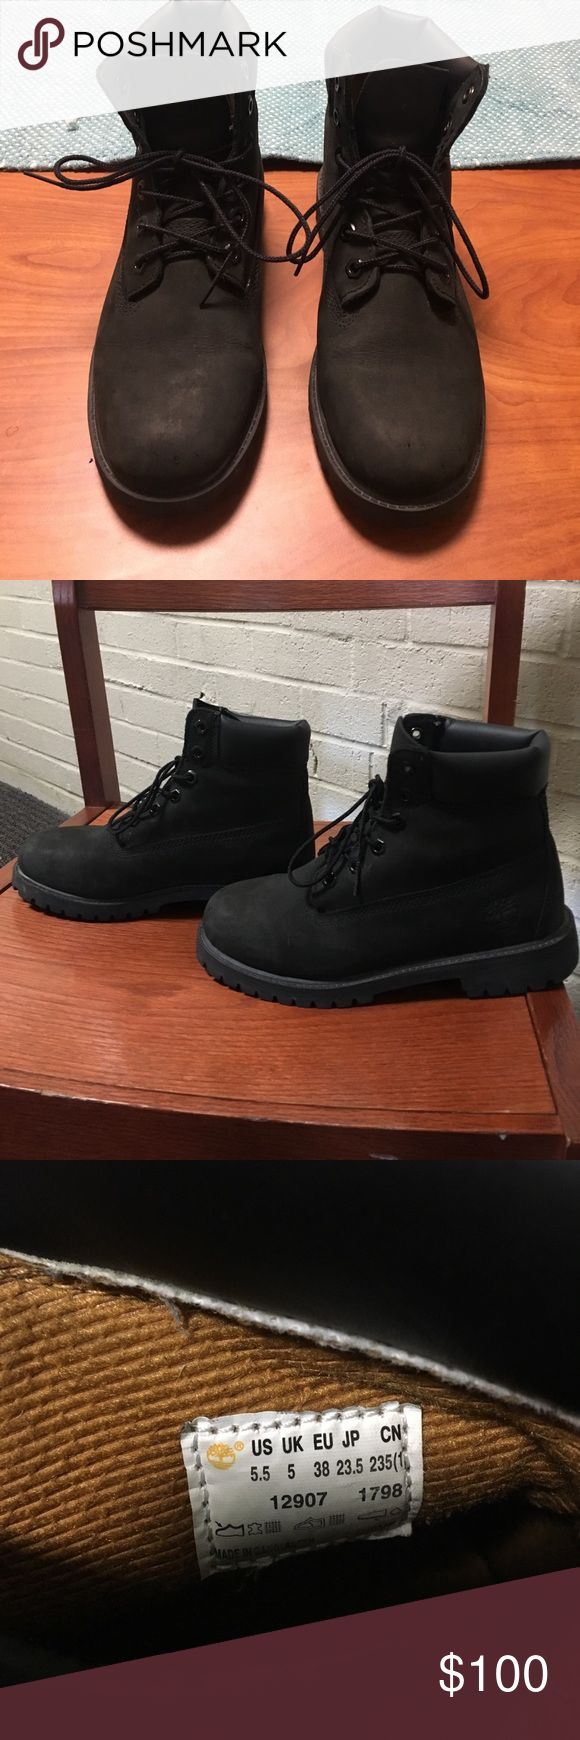 Black Timberland boots size 7.5-8 women's They have in perfect condition and have only been worn a few times. They are very comfortable and stylish for the winter! Timberland Shoes Combat & Moto Boots